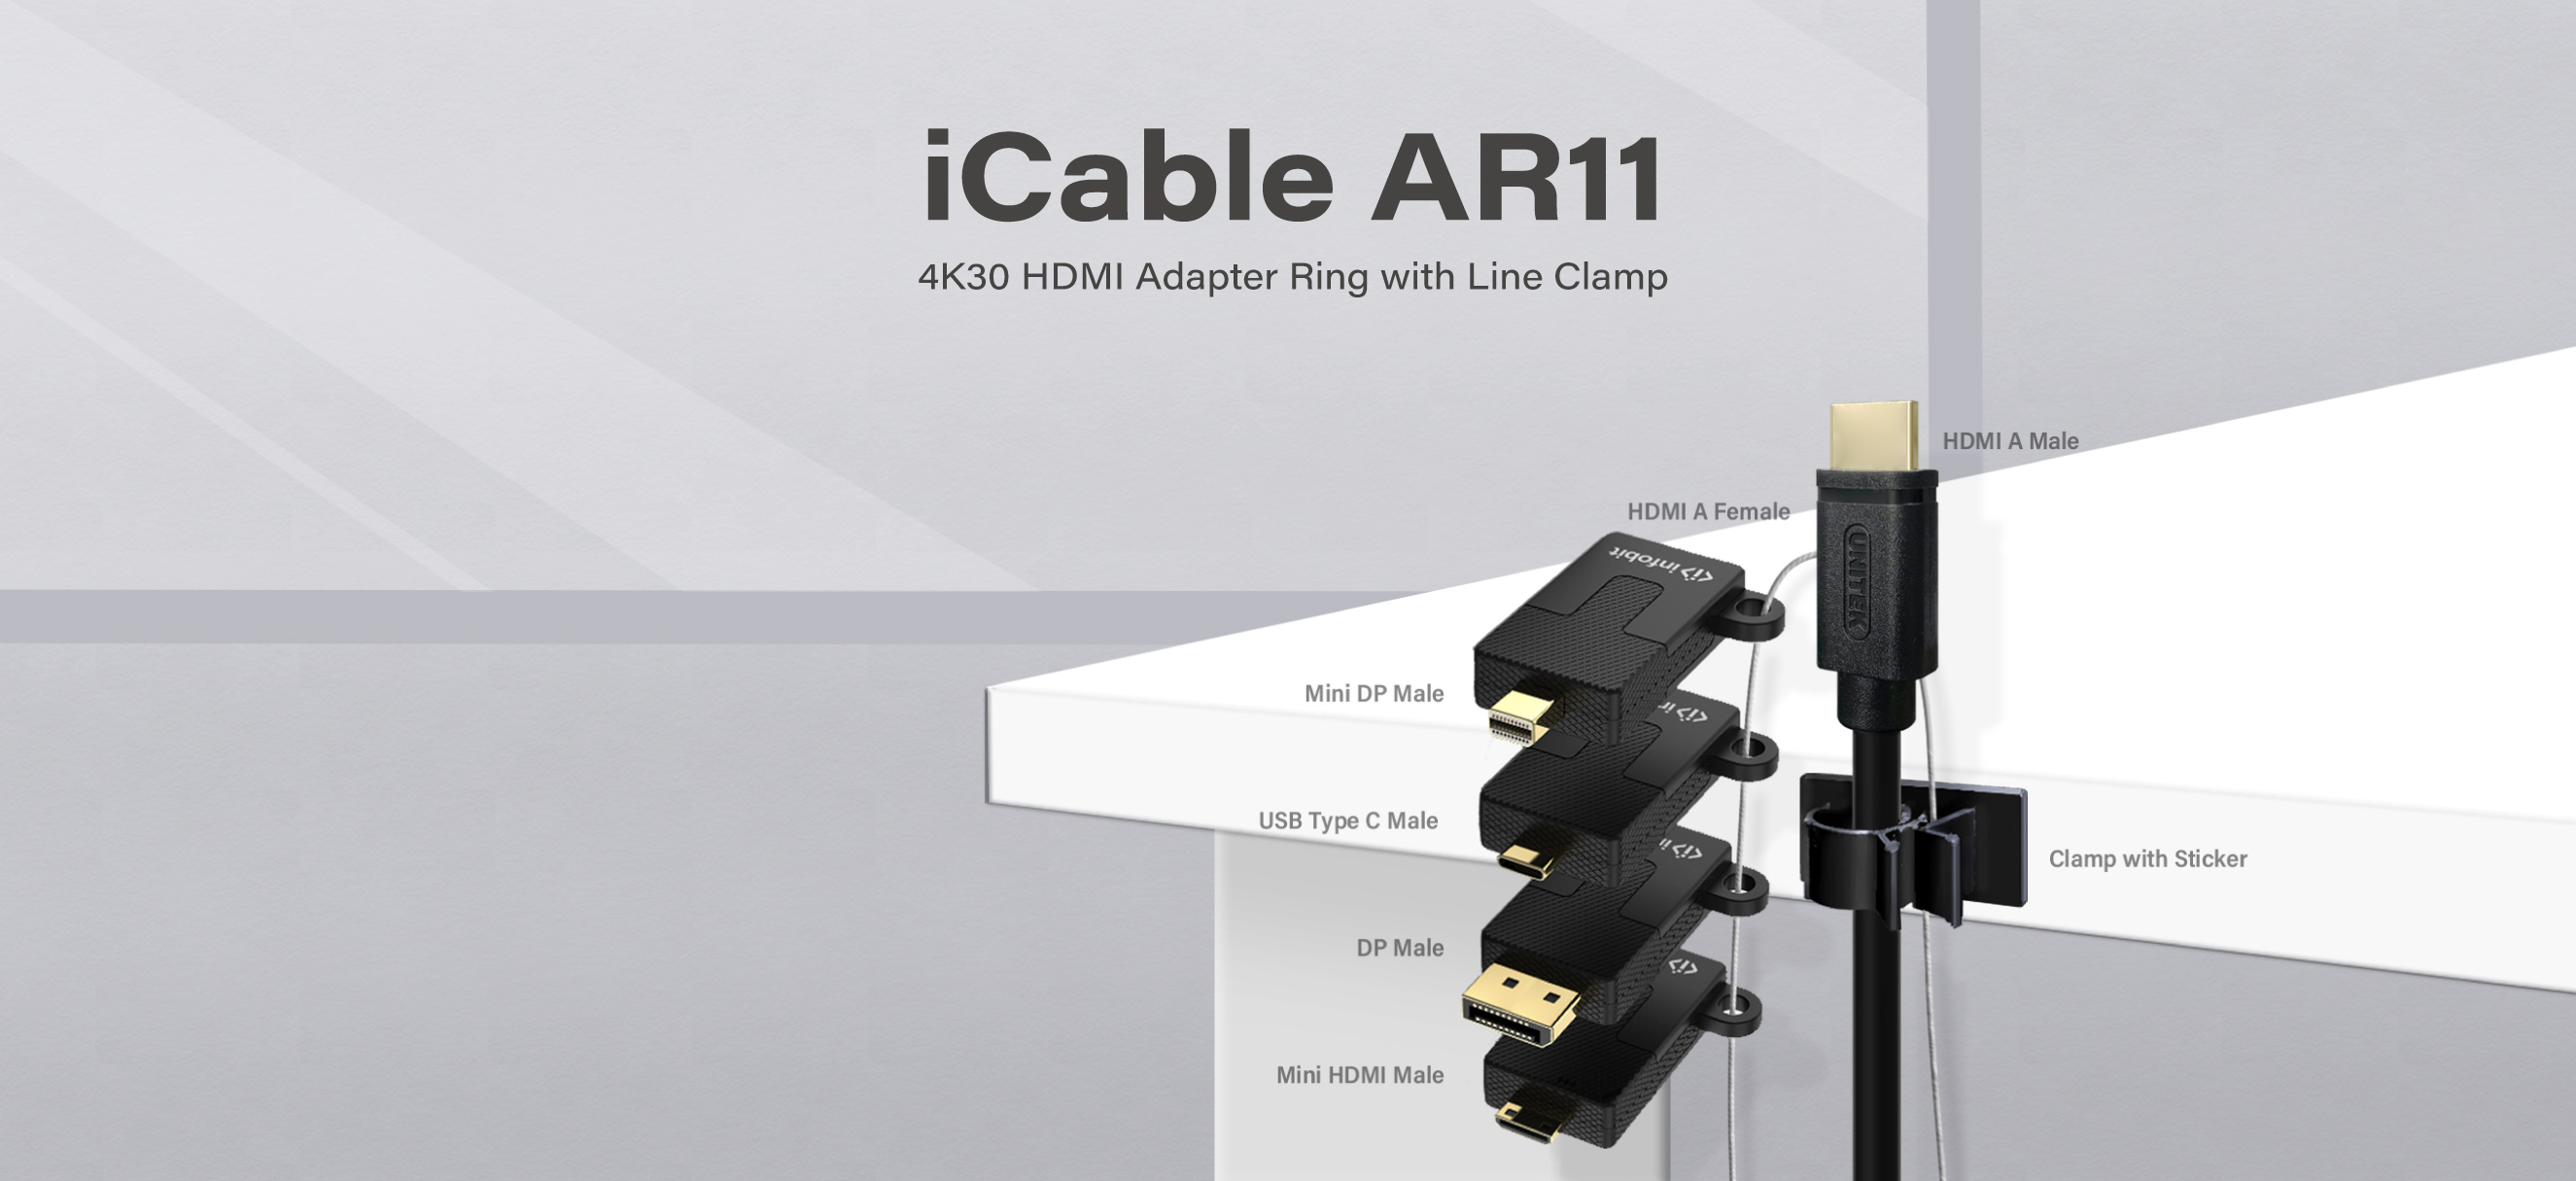 iCable AR11 4K30 HDMI Adapters Ring